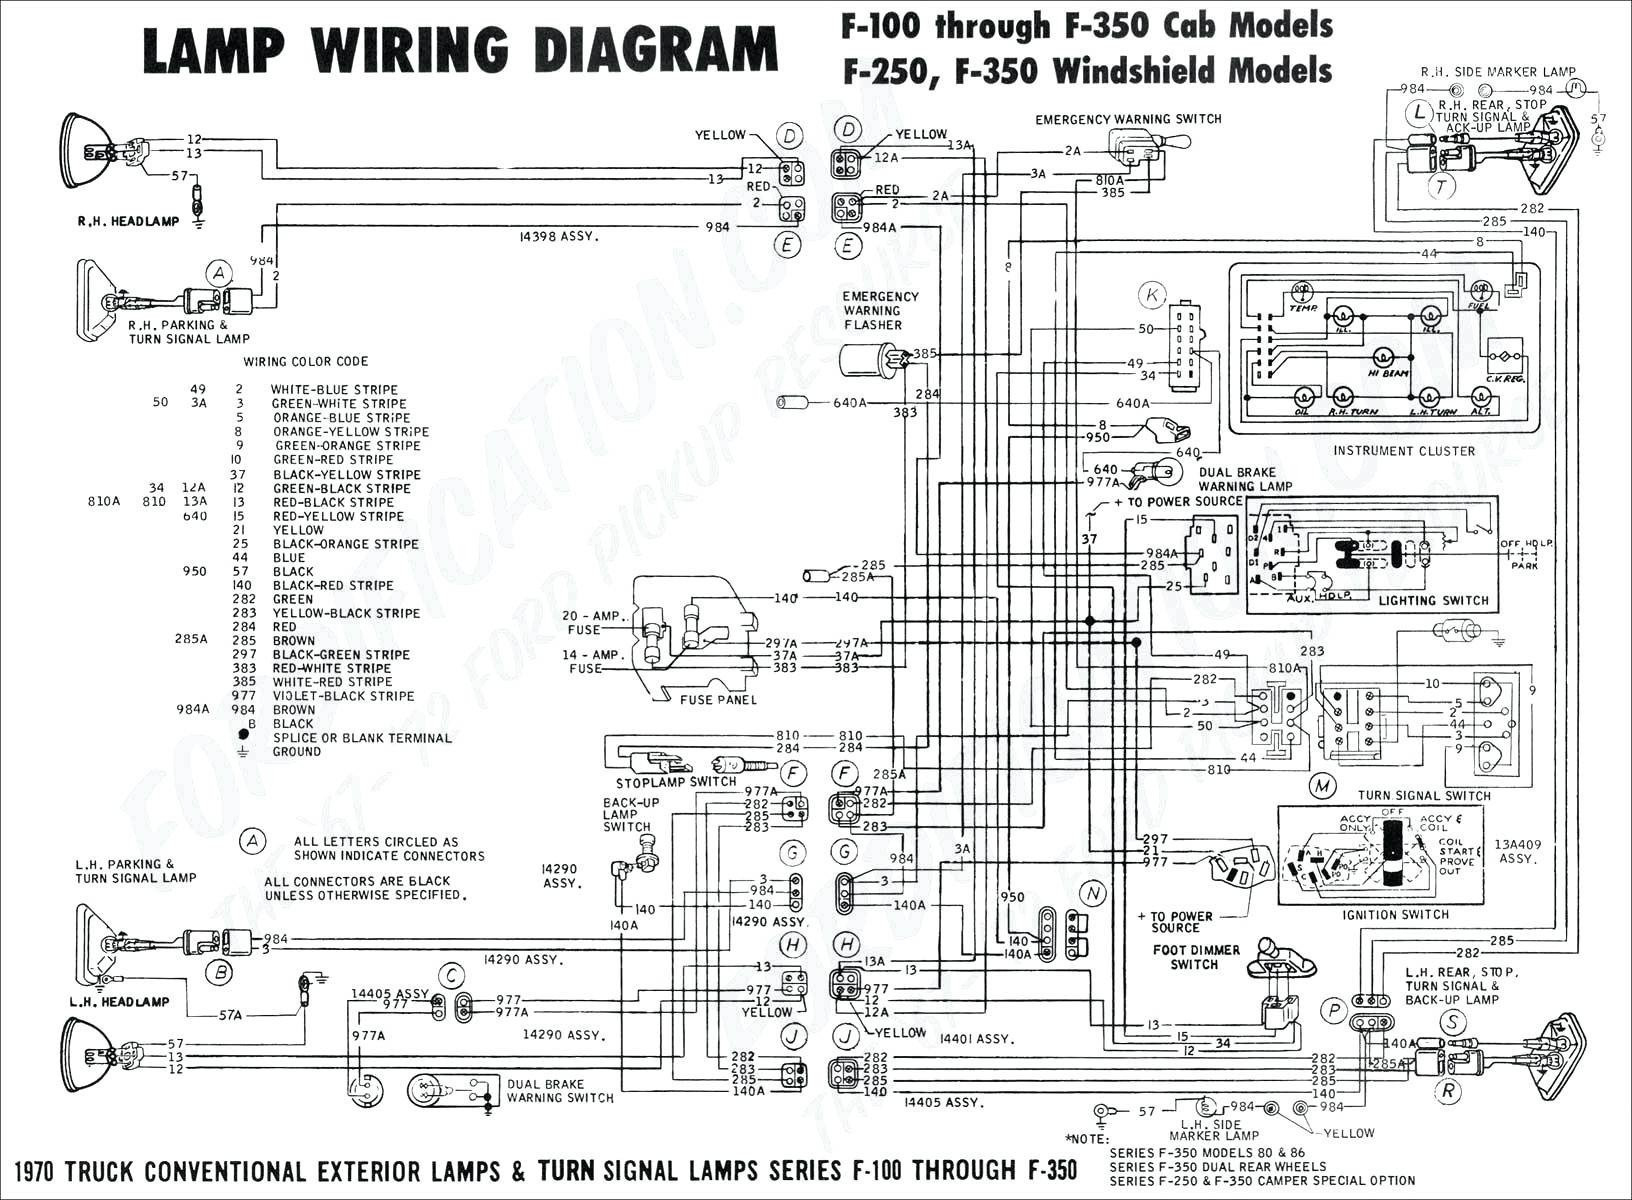 Wiring Diagram For Starter Solenoid - Pickenscountymedicalcenter - Starter Wiring Diagram Ford